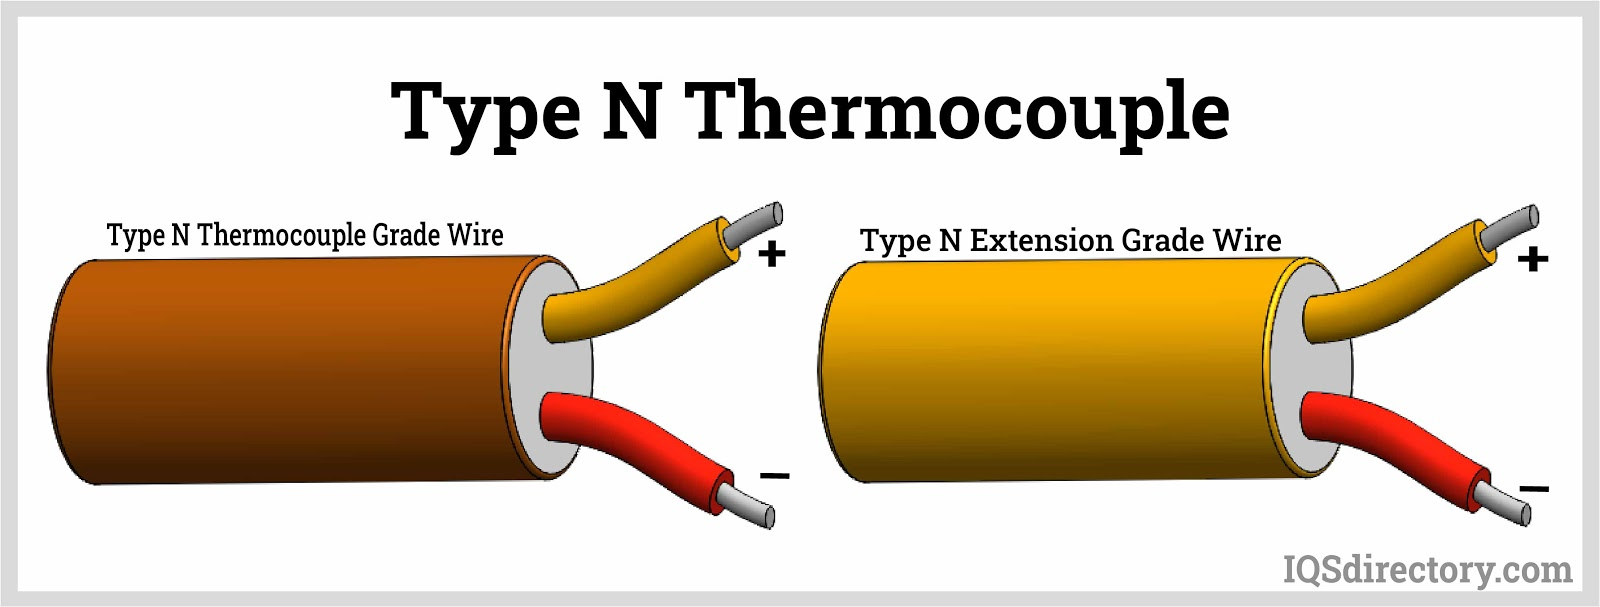 Type N Thermocouple